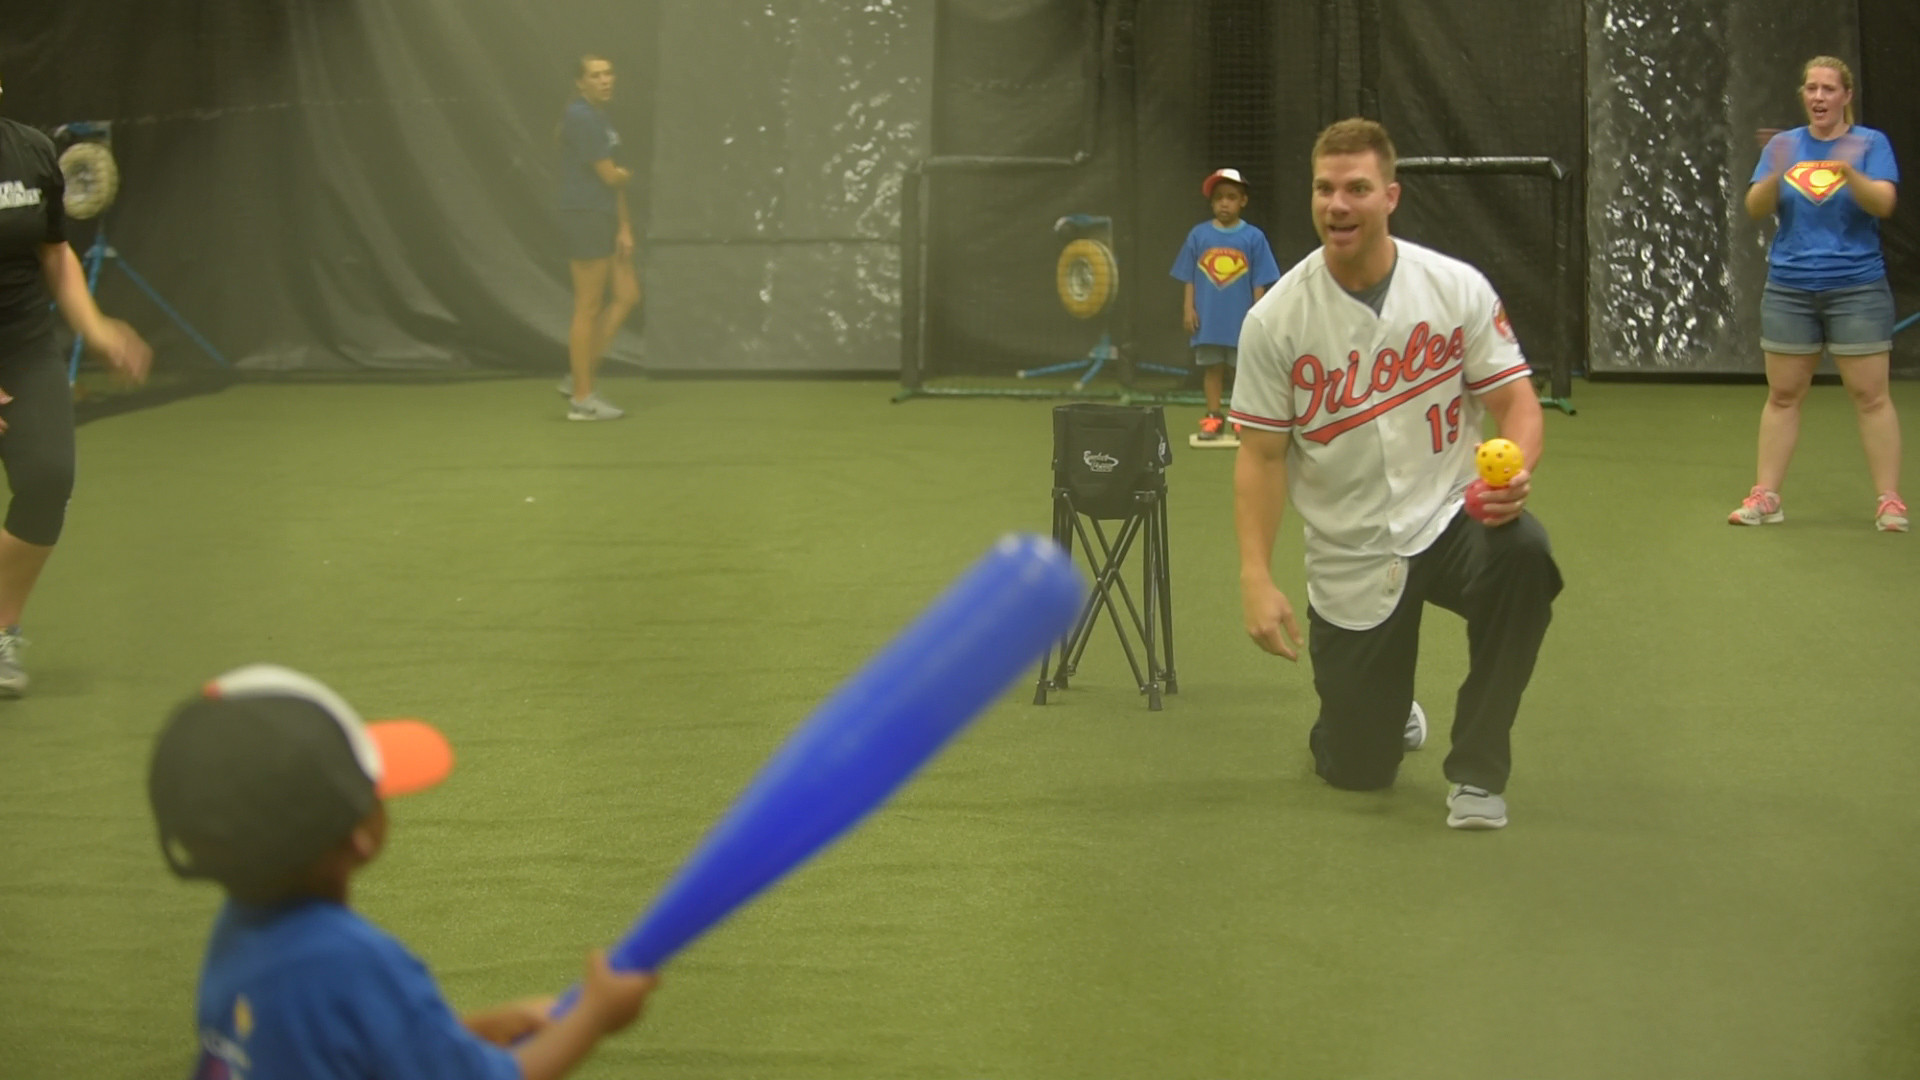 Bal-chris-davis-plays-whiffle-ball-with-kids-from-casey-cares-20160624